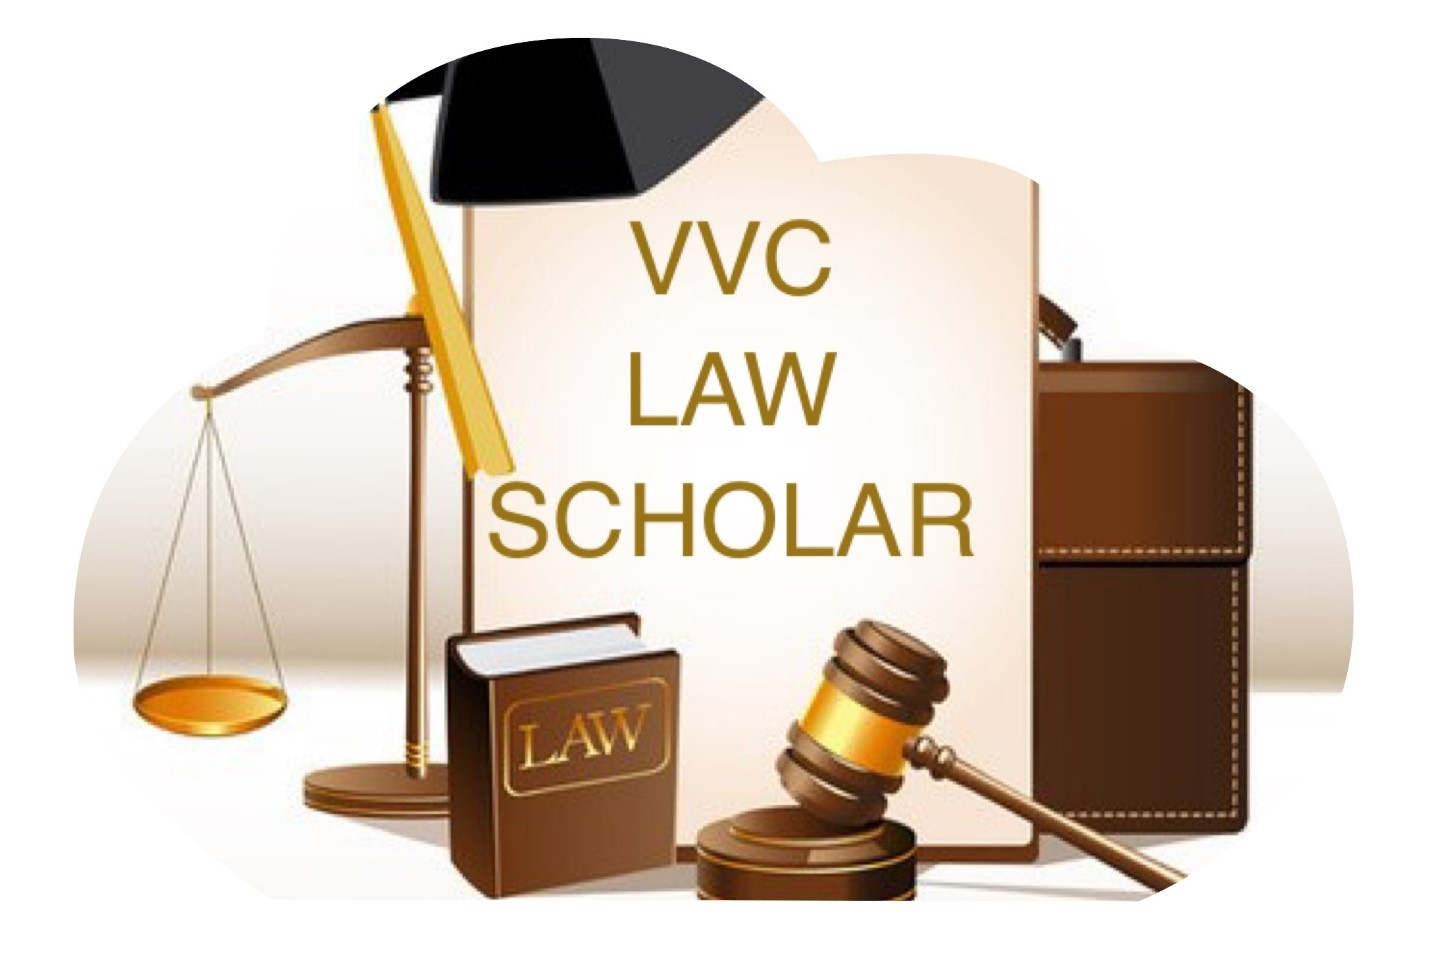 scales, gavel, words - Law Scholar